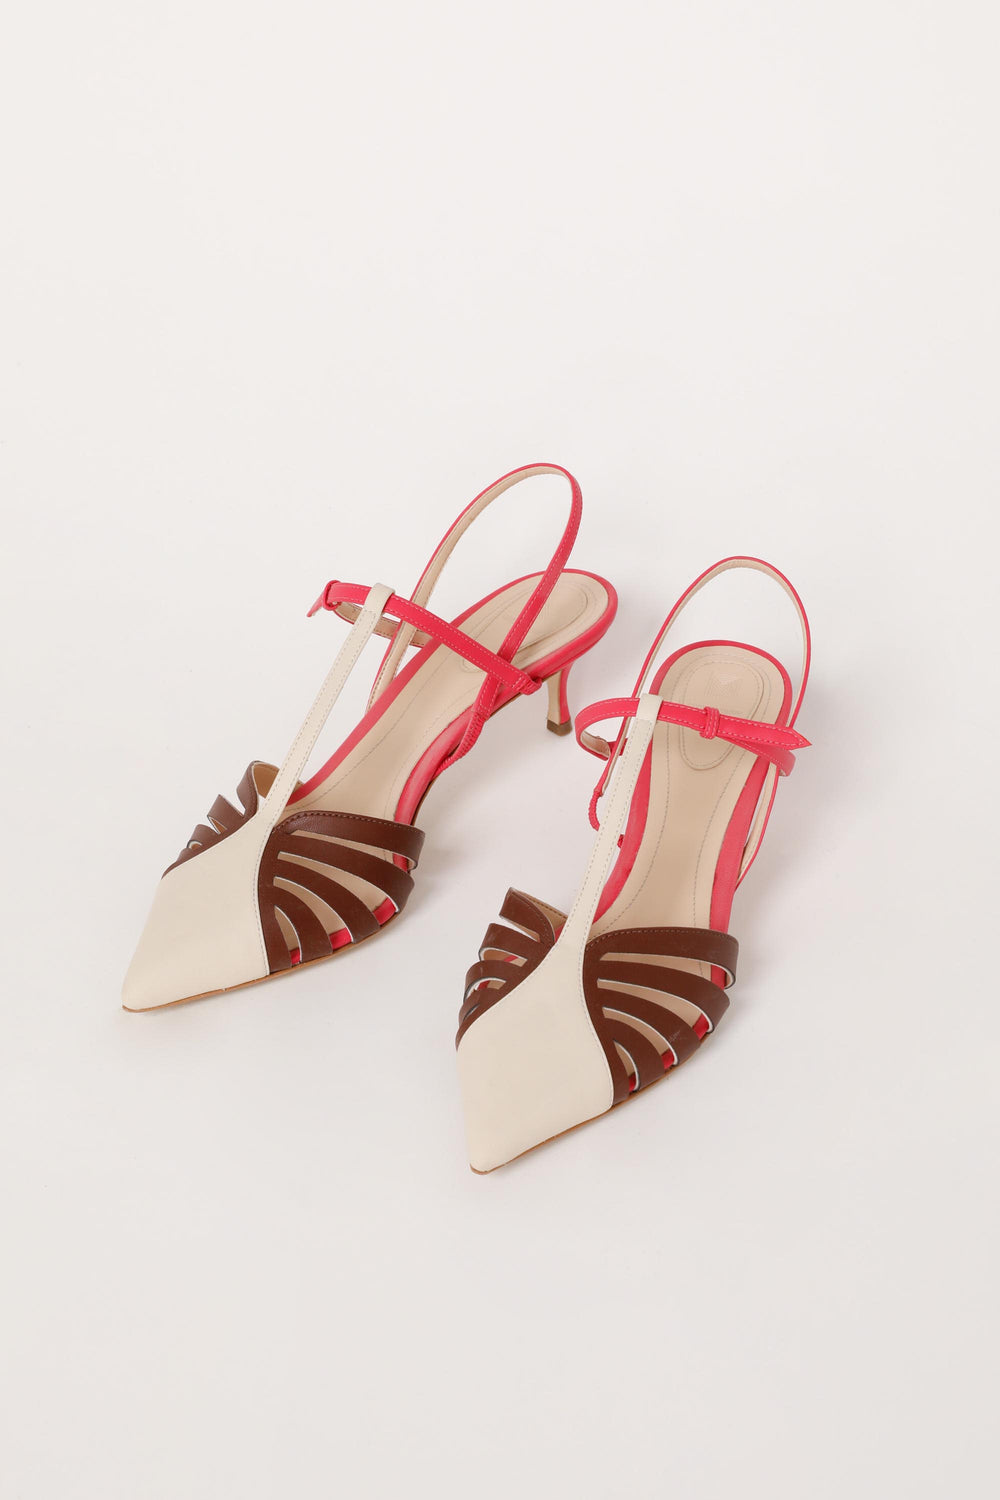 Charisse Slingback Lattice Heels